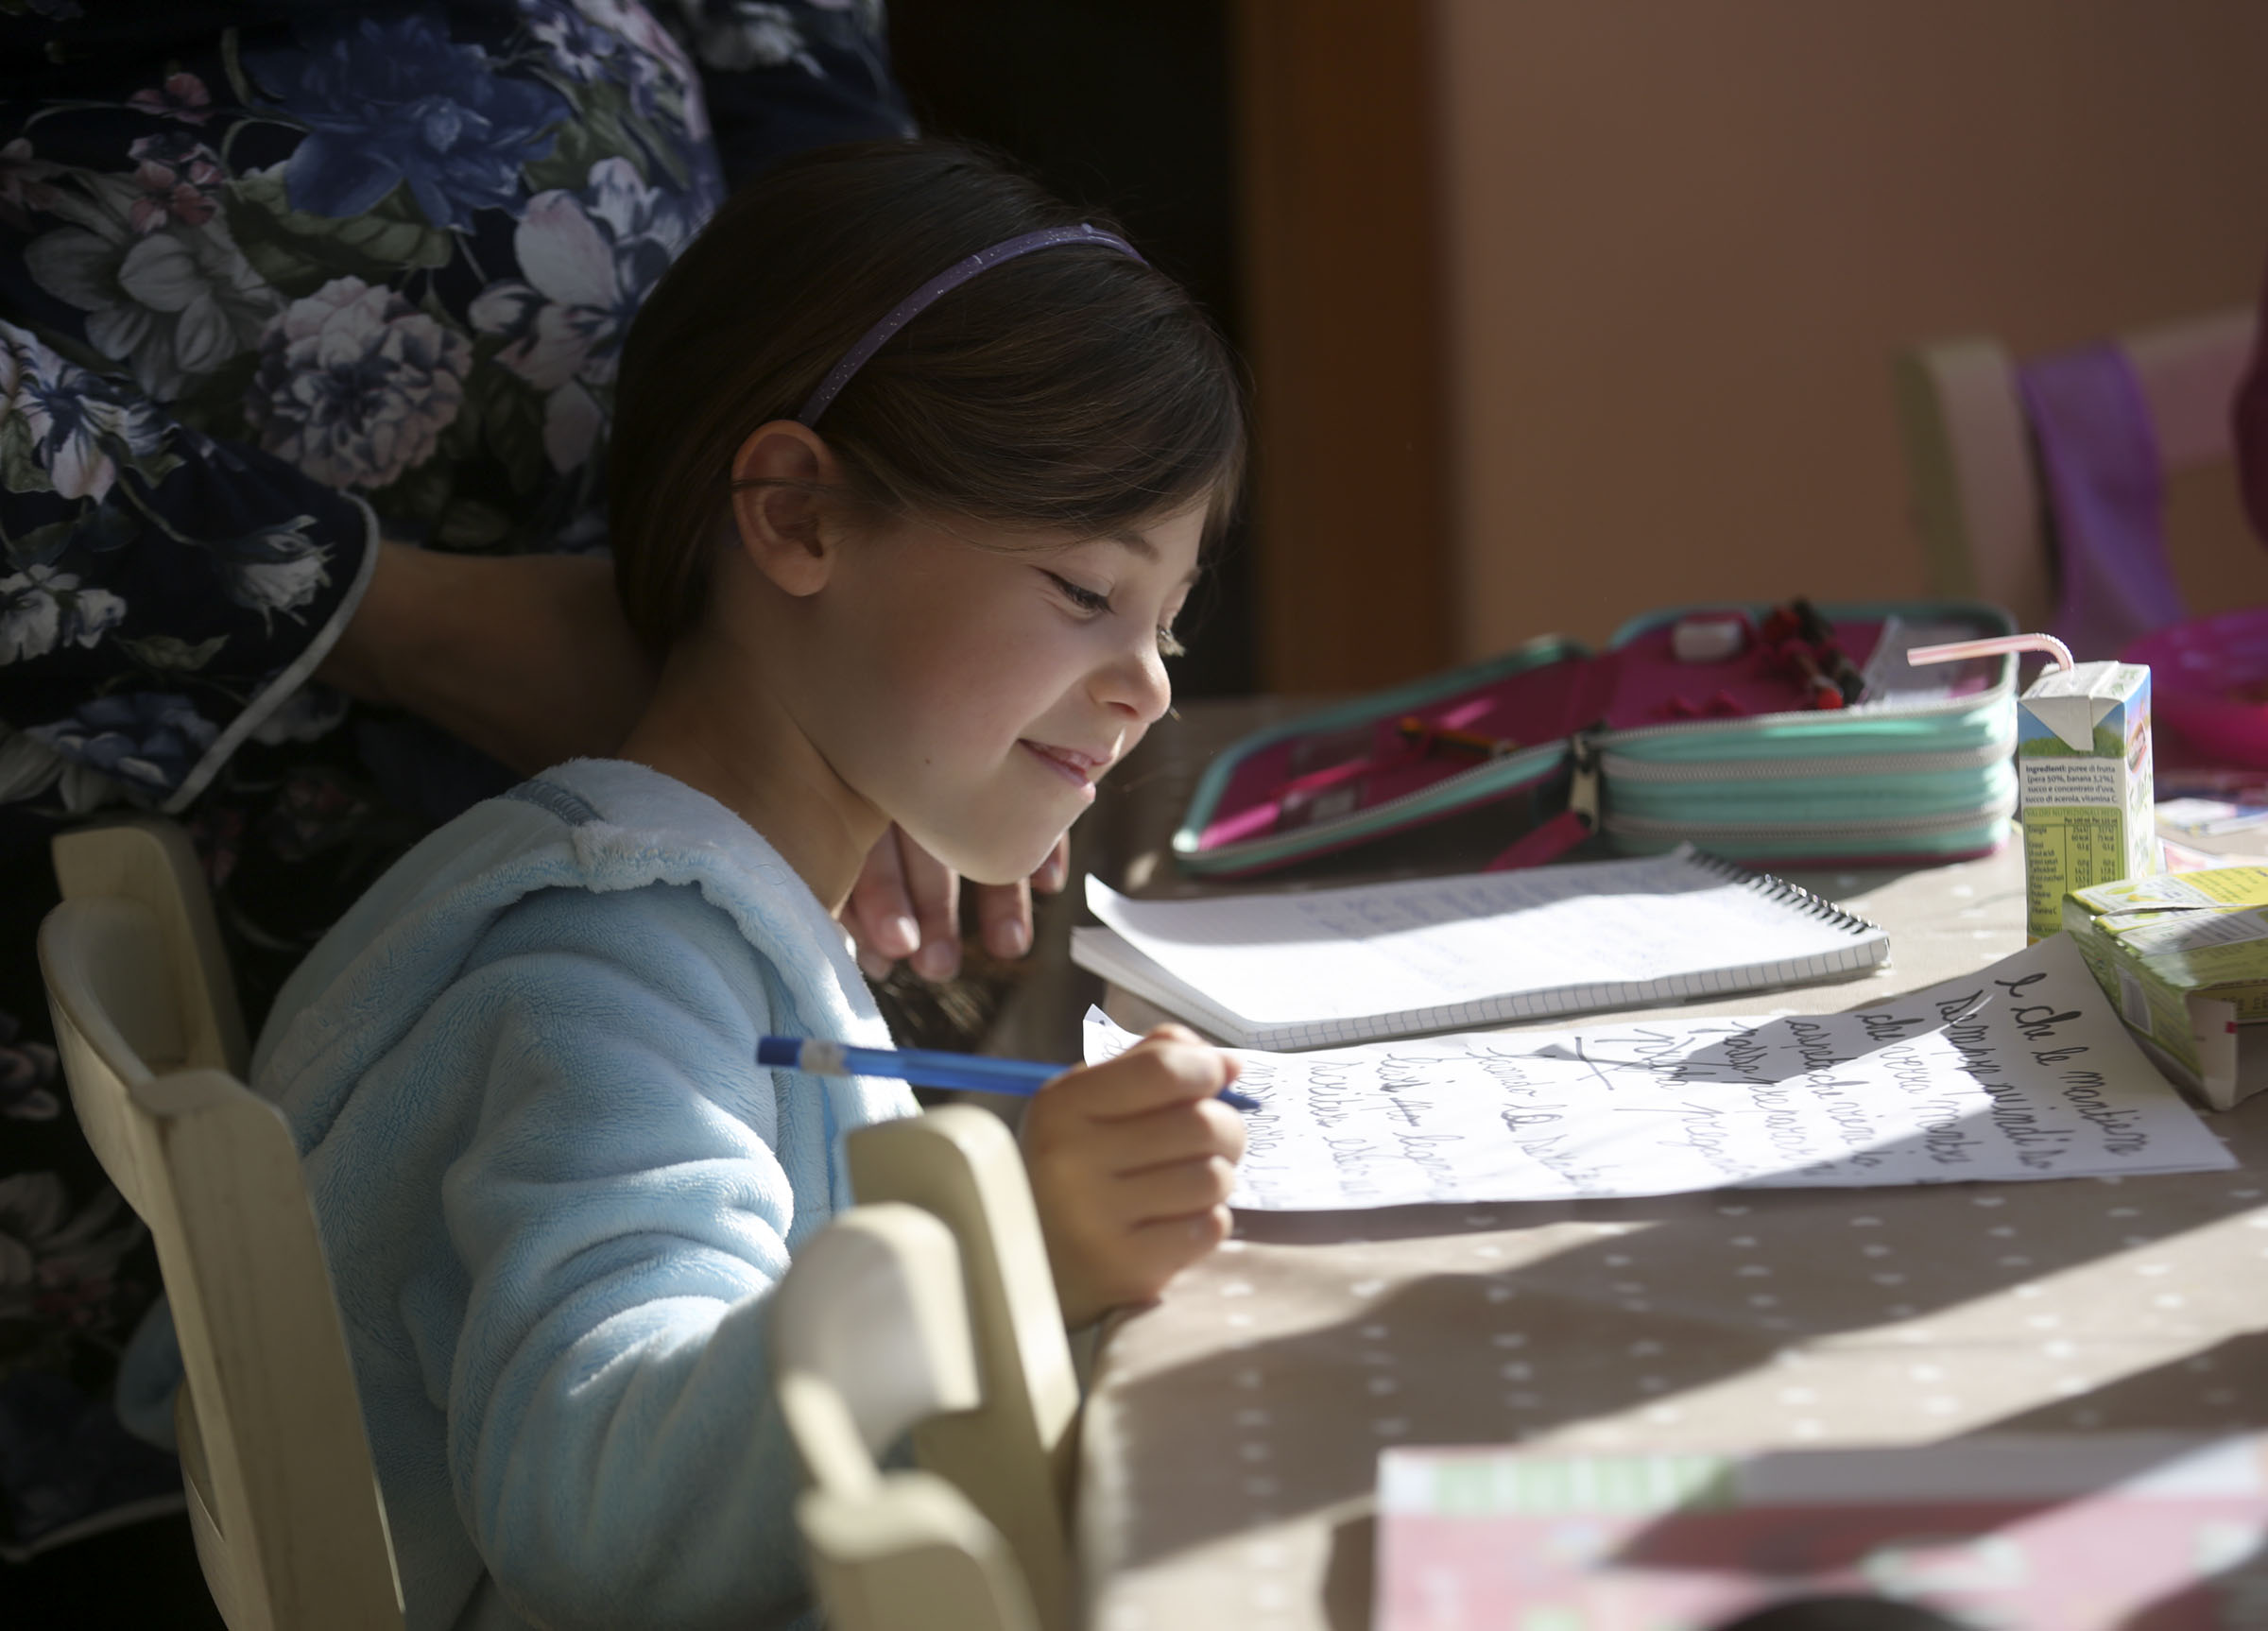 Emma Salerno, 7, prepares her Primary talk at home in Rome, Italy, on Sunday morning, Nov. 18, 2018.